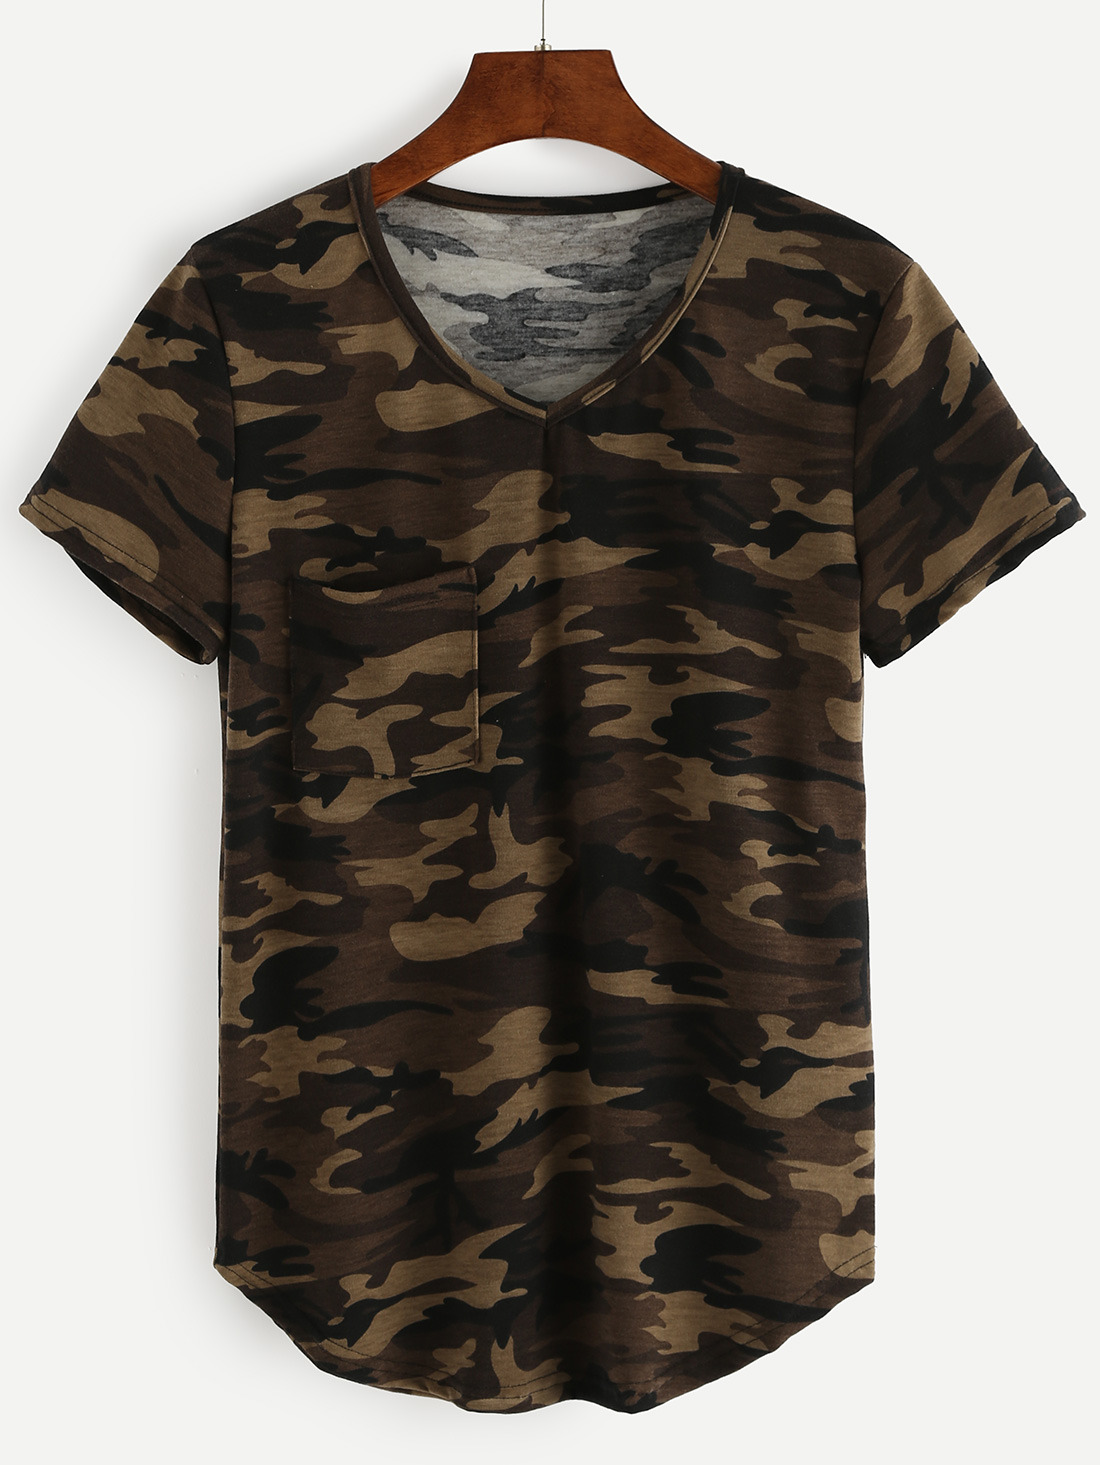 afbf2ea69f9f6 Shop V-Neck Camo T-shirt - Olive Green online. SheIn offers V-Neck Camo T- shirt - Olive Green & more to fit your fashionable needs.